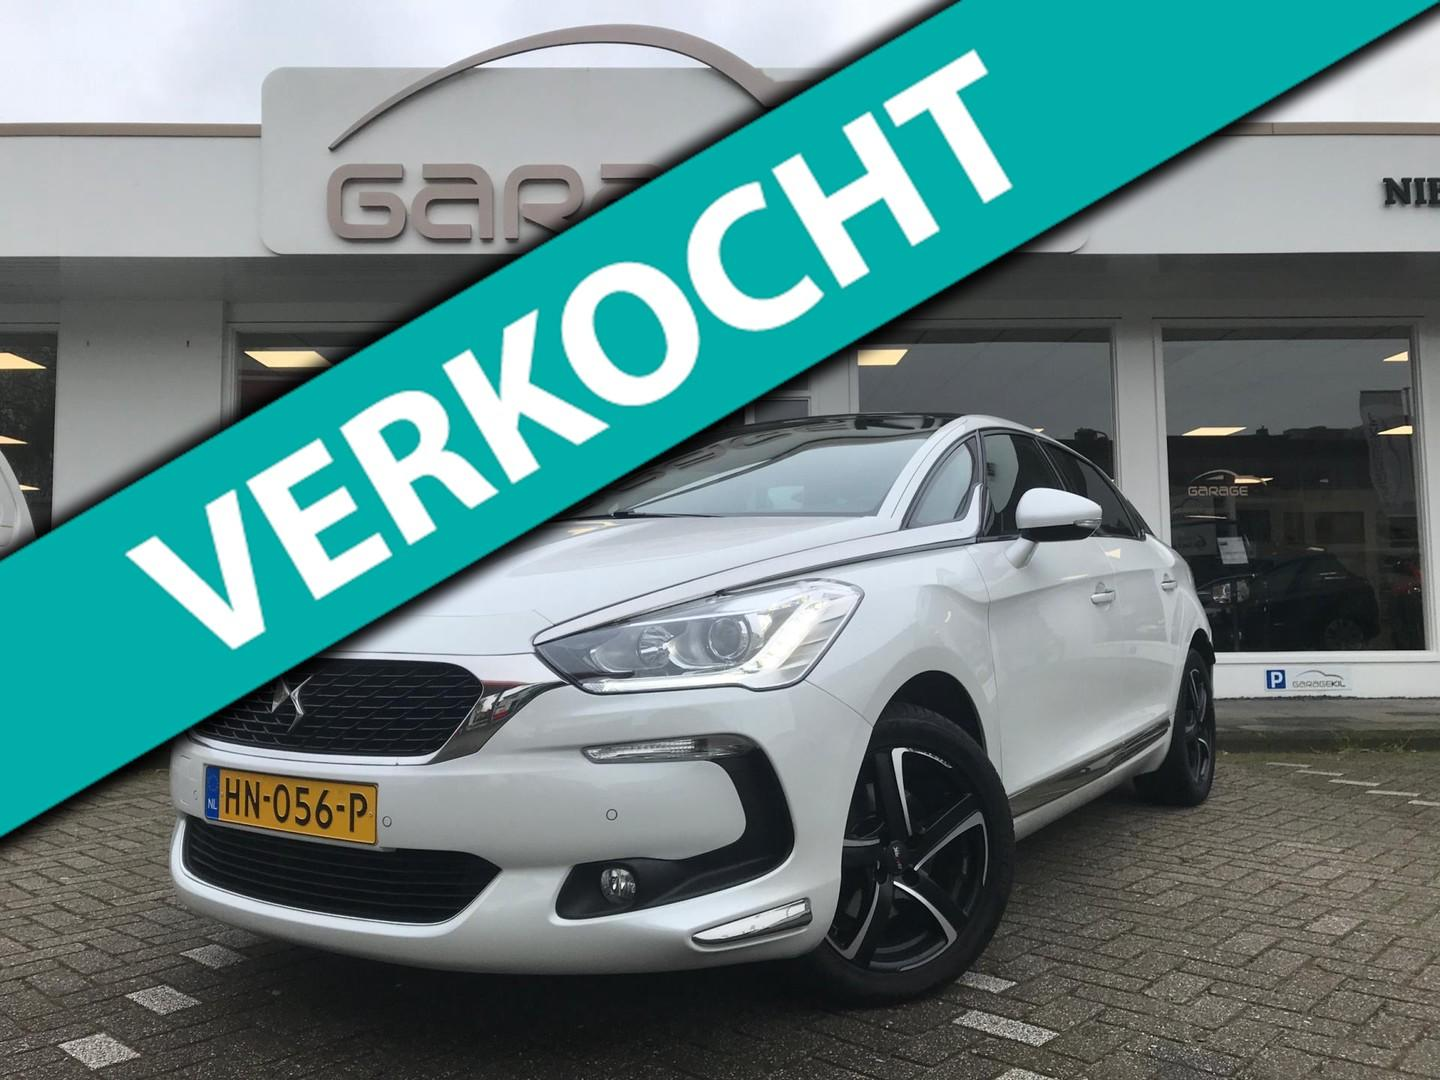 Ds Ds 5 1.6 thp business executive org. nl